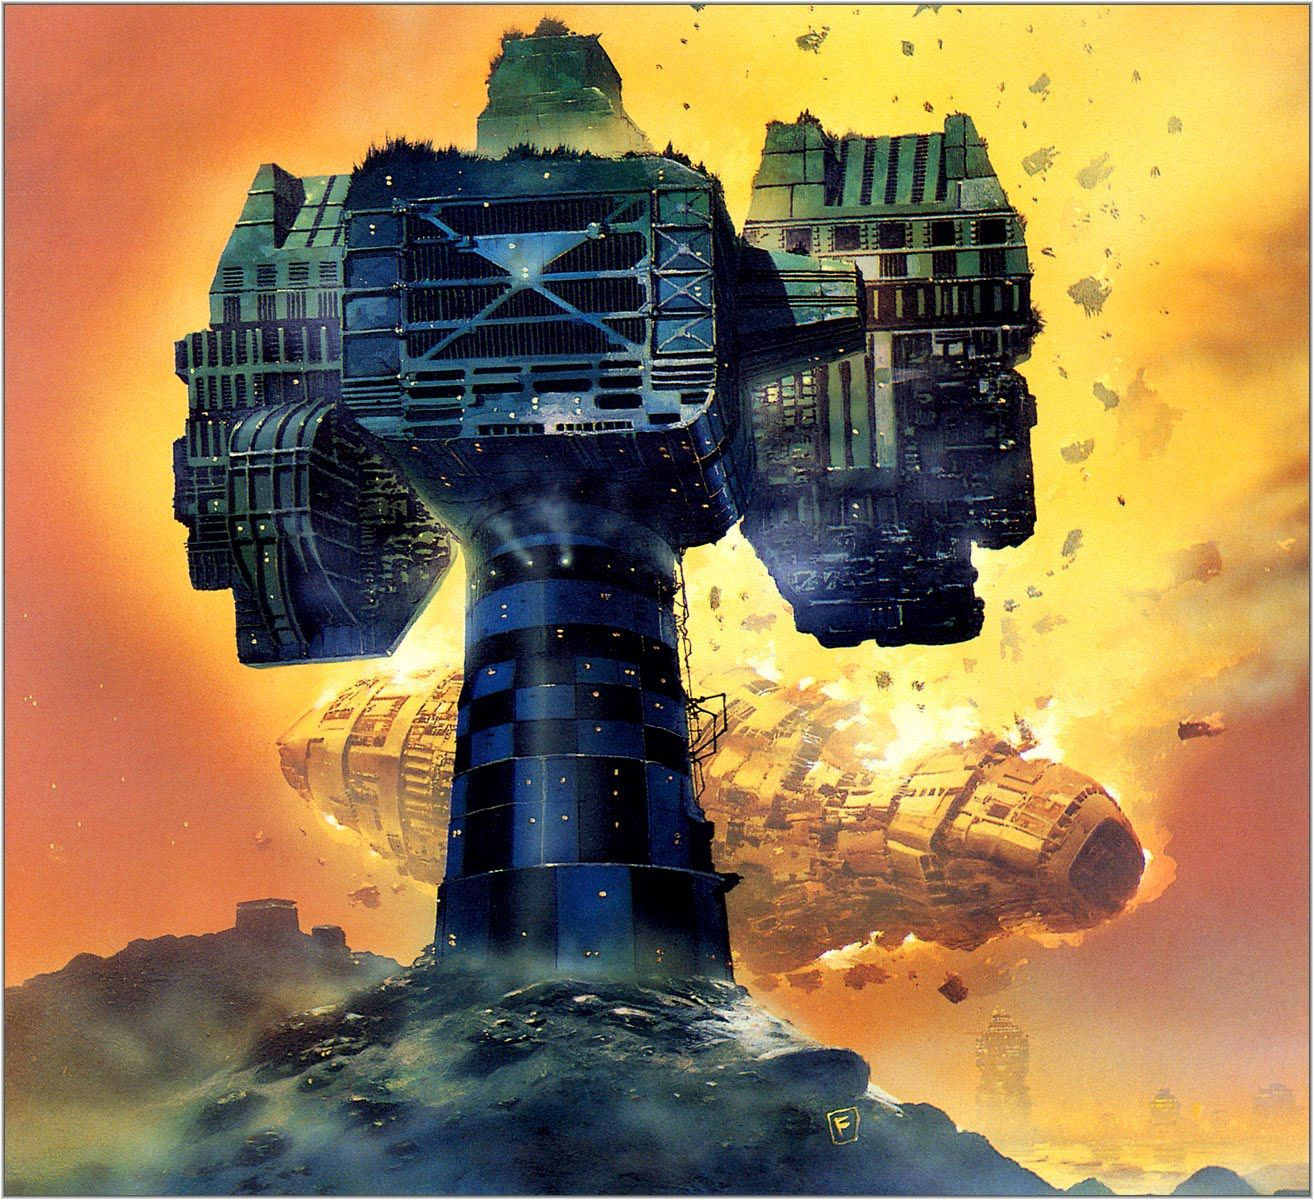 70s Sci Fi Art Chris Foss: Fantastik Worldz In 2019